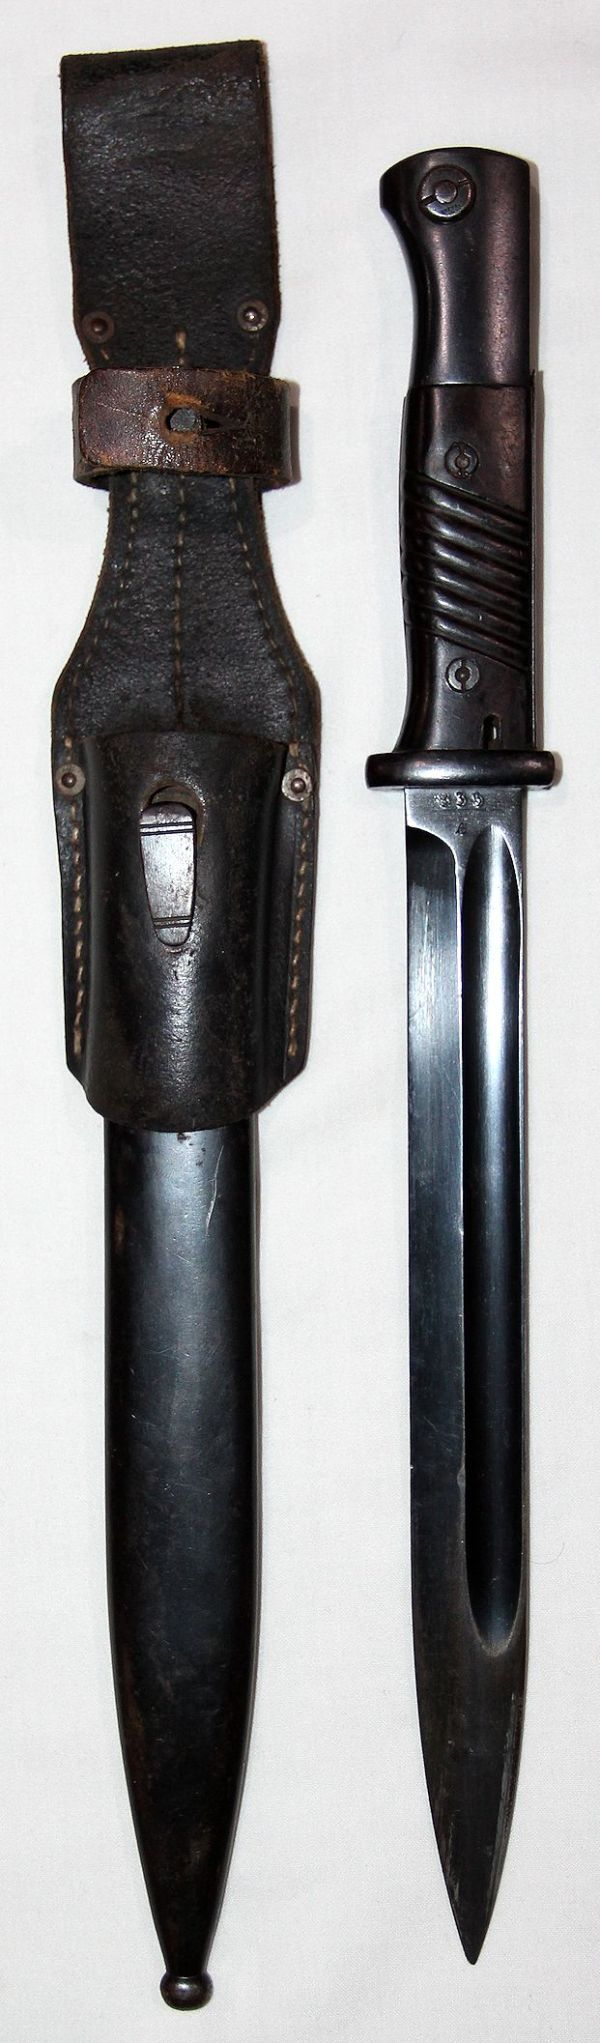 N048. WWII GERMAN MATCHING K98 BAYONET WITH LEATHER FROG